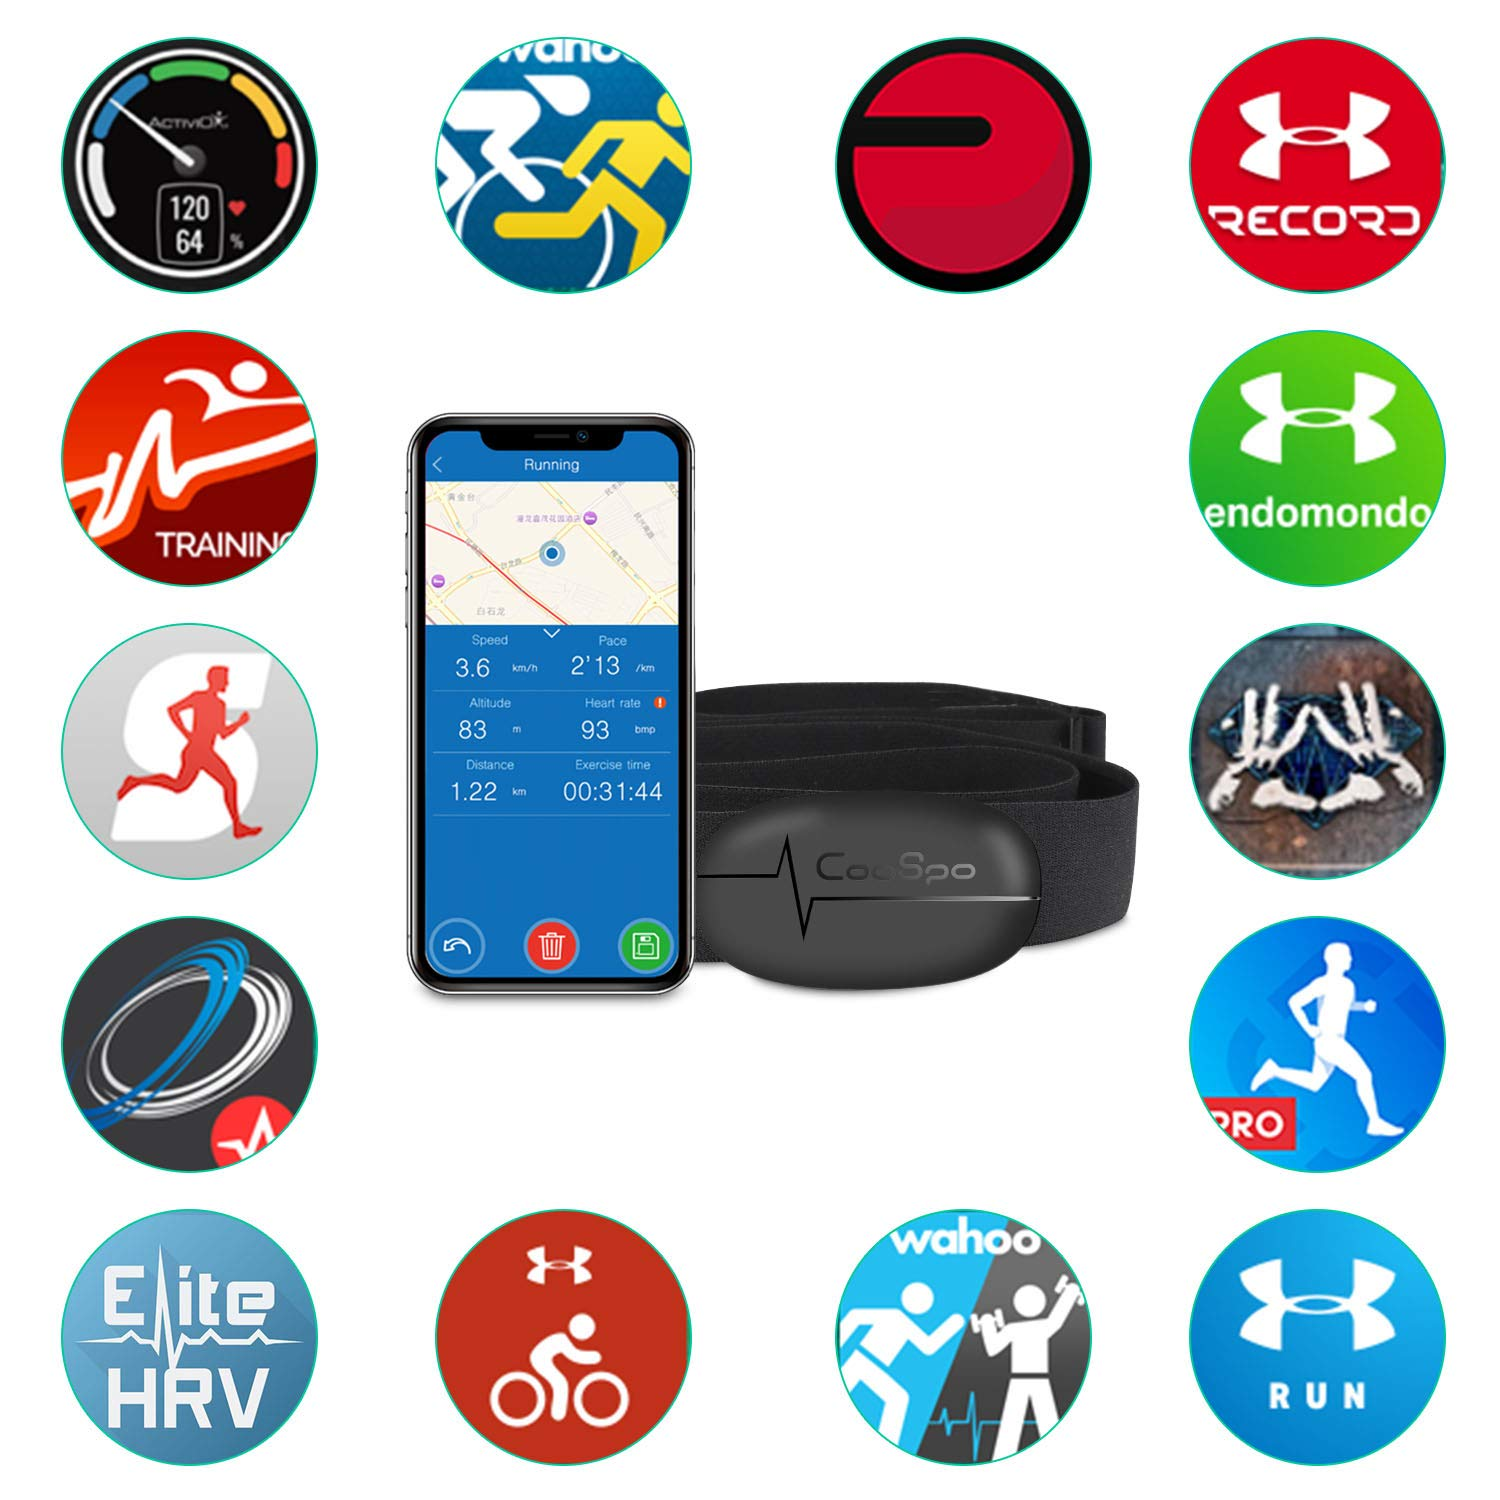 Coospo Heart Rate Monitor Chest Strap Bluetooth 4 0 Ant Waterproof Hr Sensor For Wahoo Peloton Zwift Polar Ddp Yoga Map My Ride Garmin Sports Watches Amazon Sg Sports Fitness Outdoors